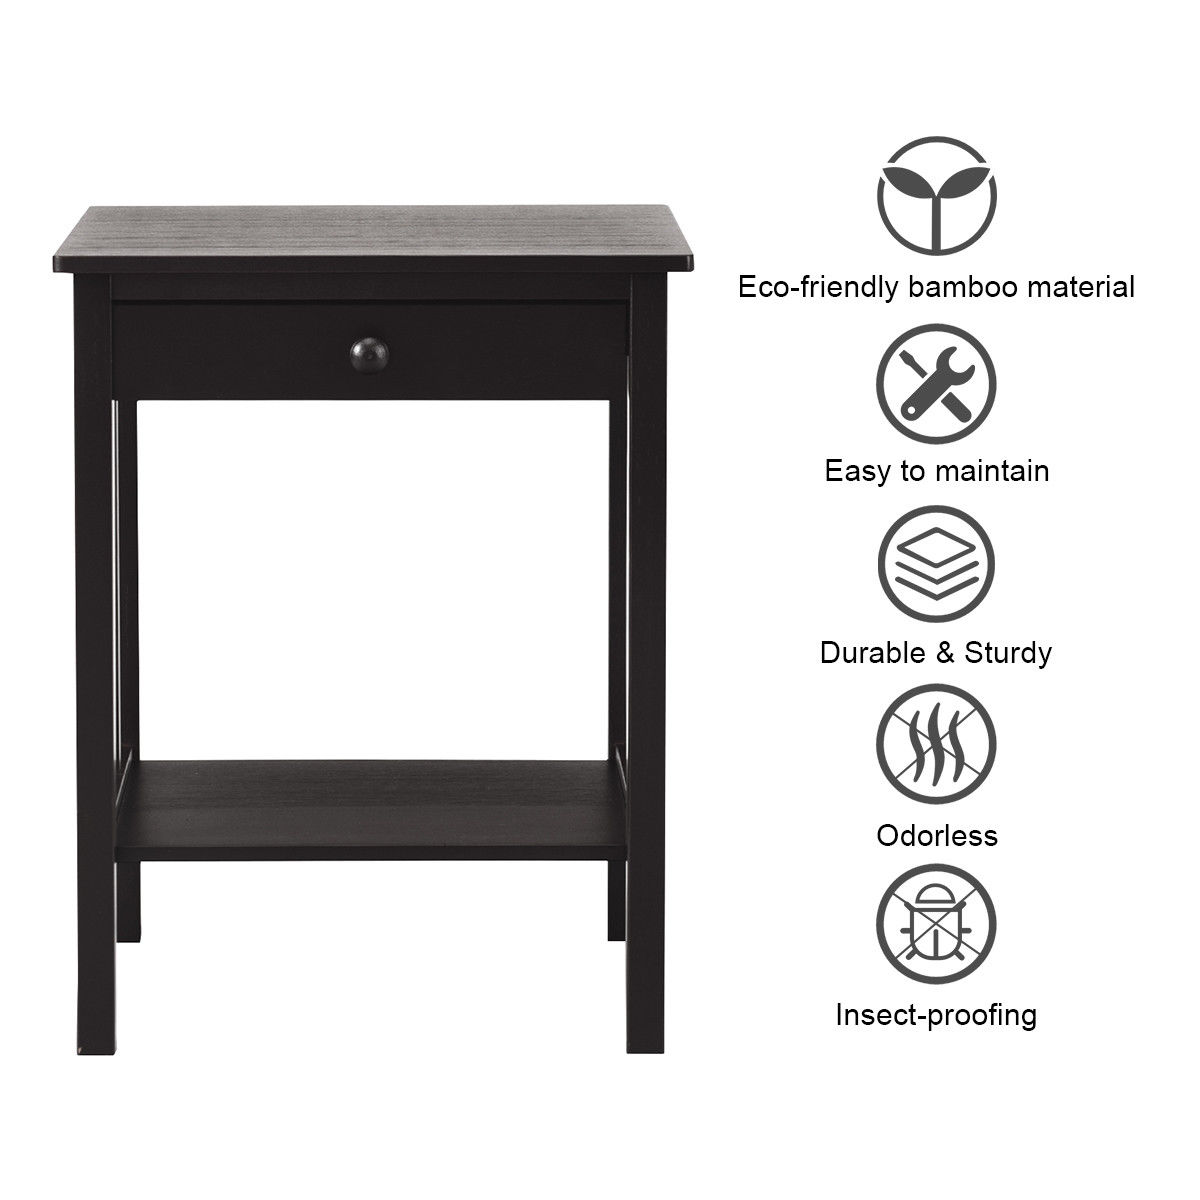 Bamboo Nightstand End Table Drawer Storage Shelf Side Table Multipurpose Black - image 8 of 10